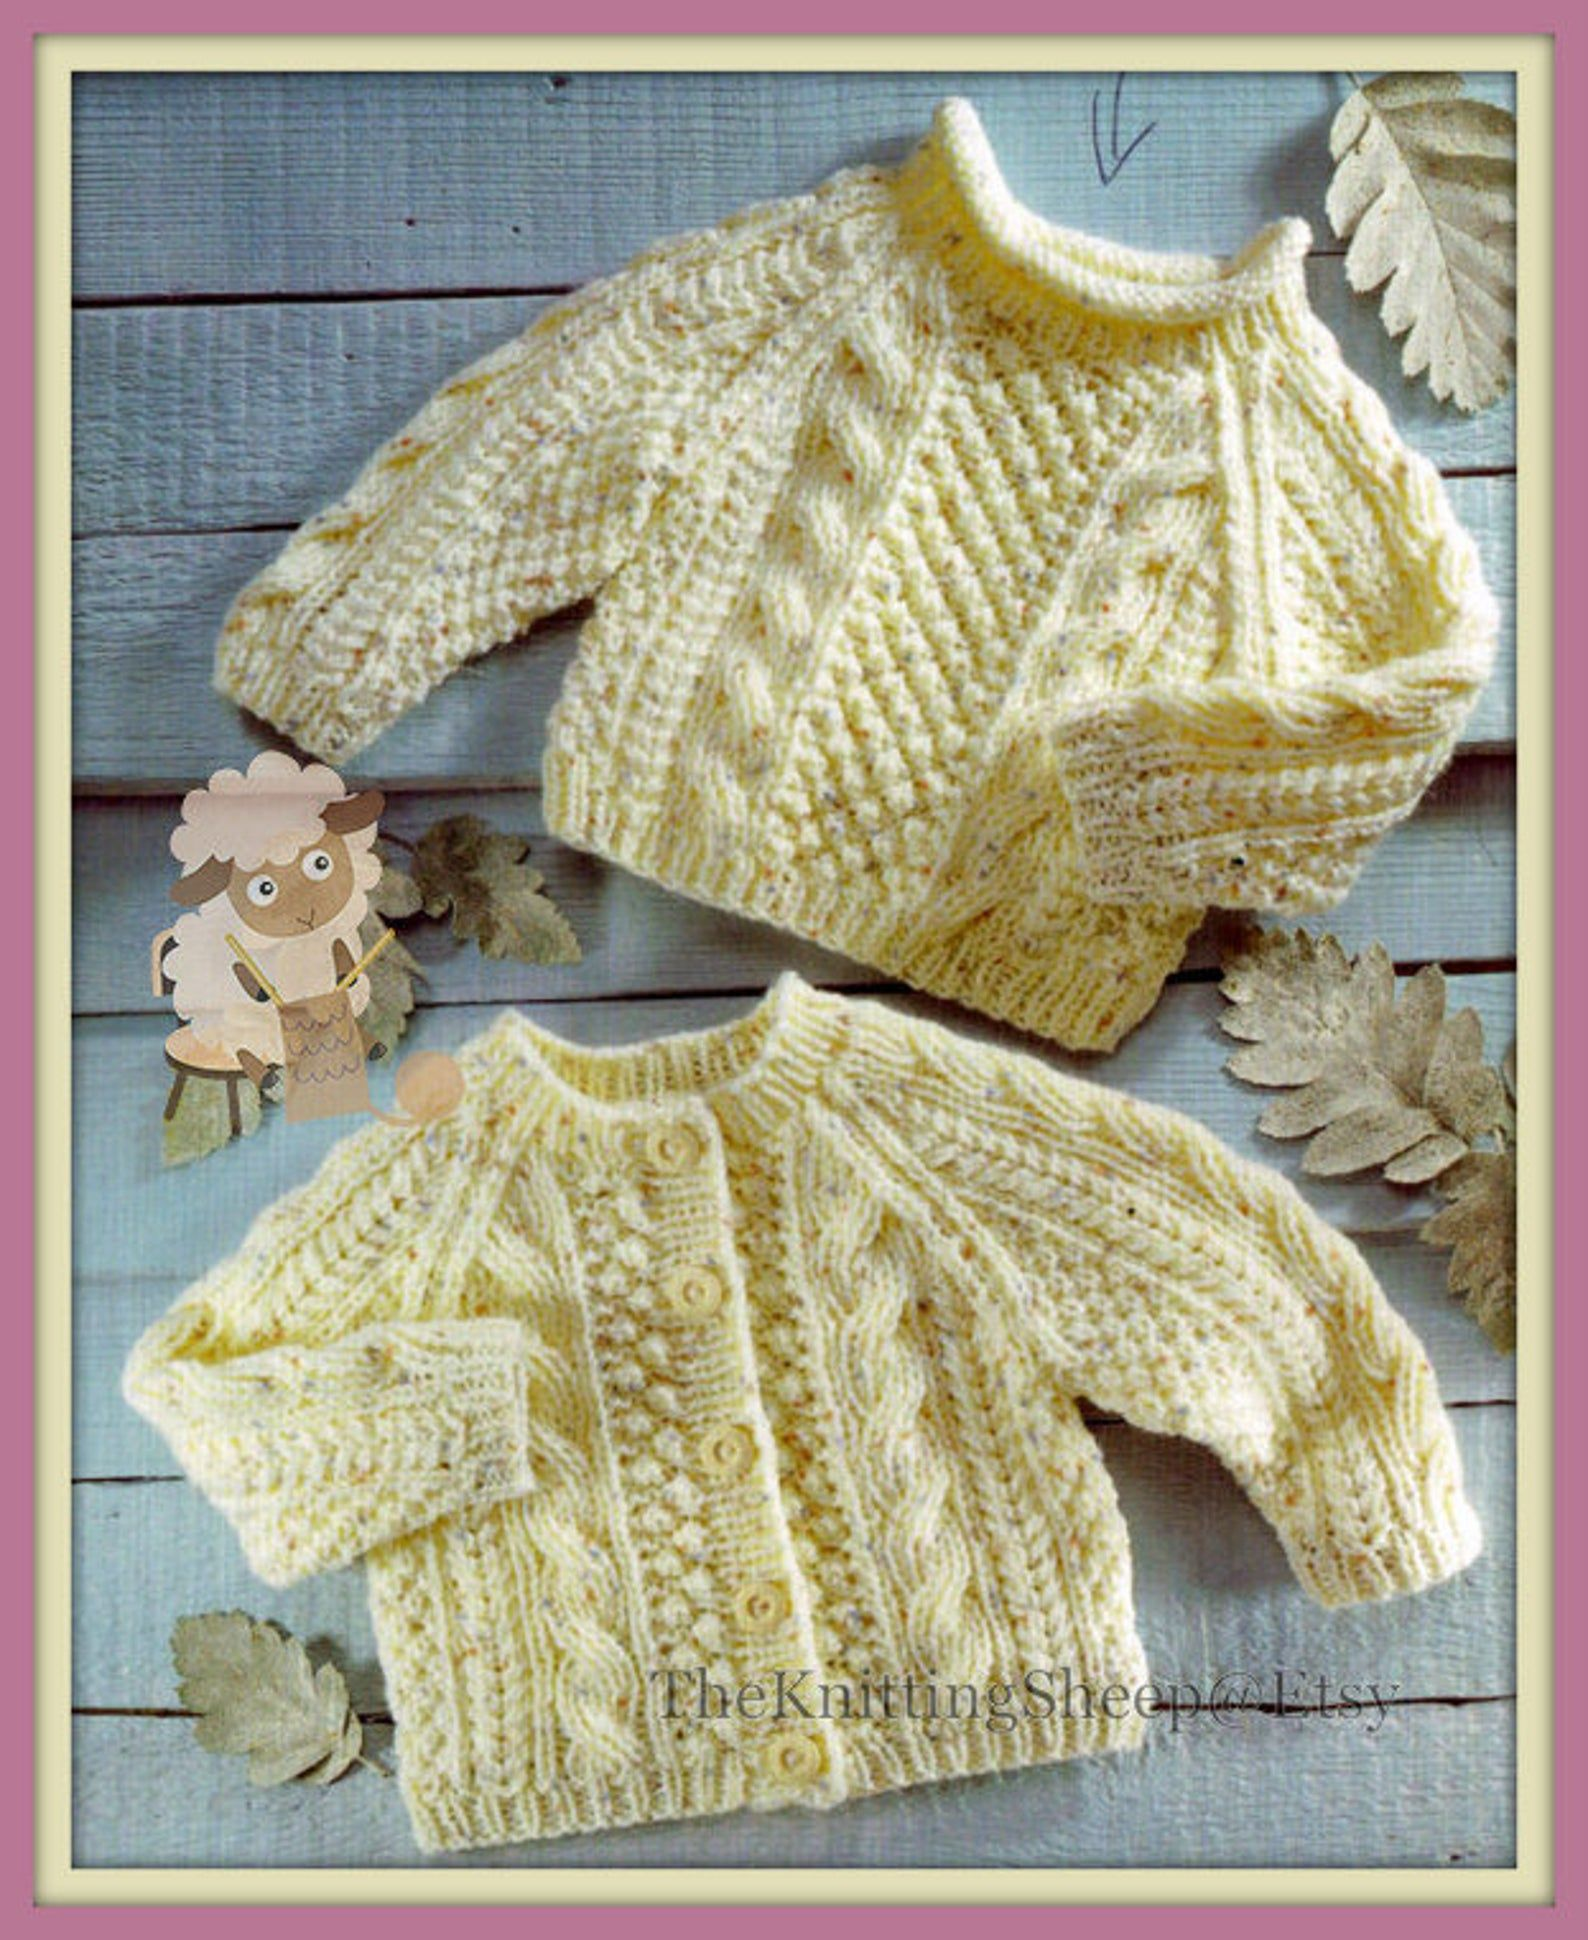 Pdf Knitting Pattern For Aran Cardigan Sweater To Fit Chest Etsy Cable Knit Sweater Pattern Aran Cardigan Baby Boy Knitting Patterns